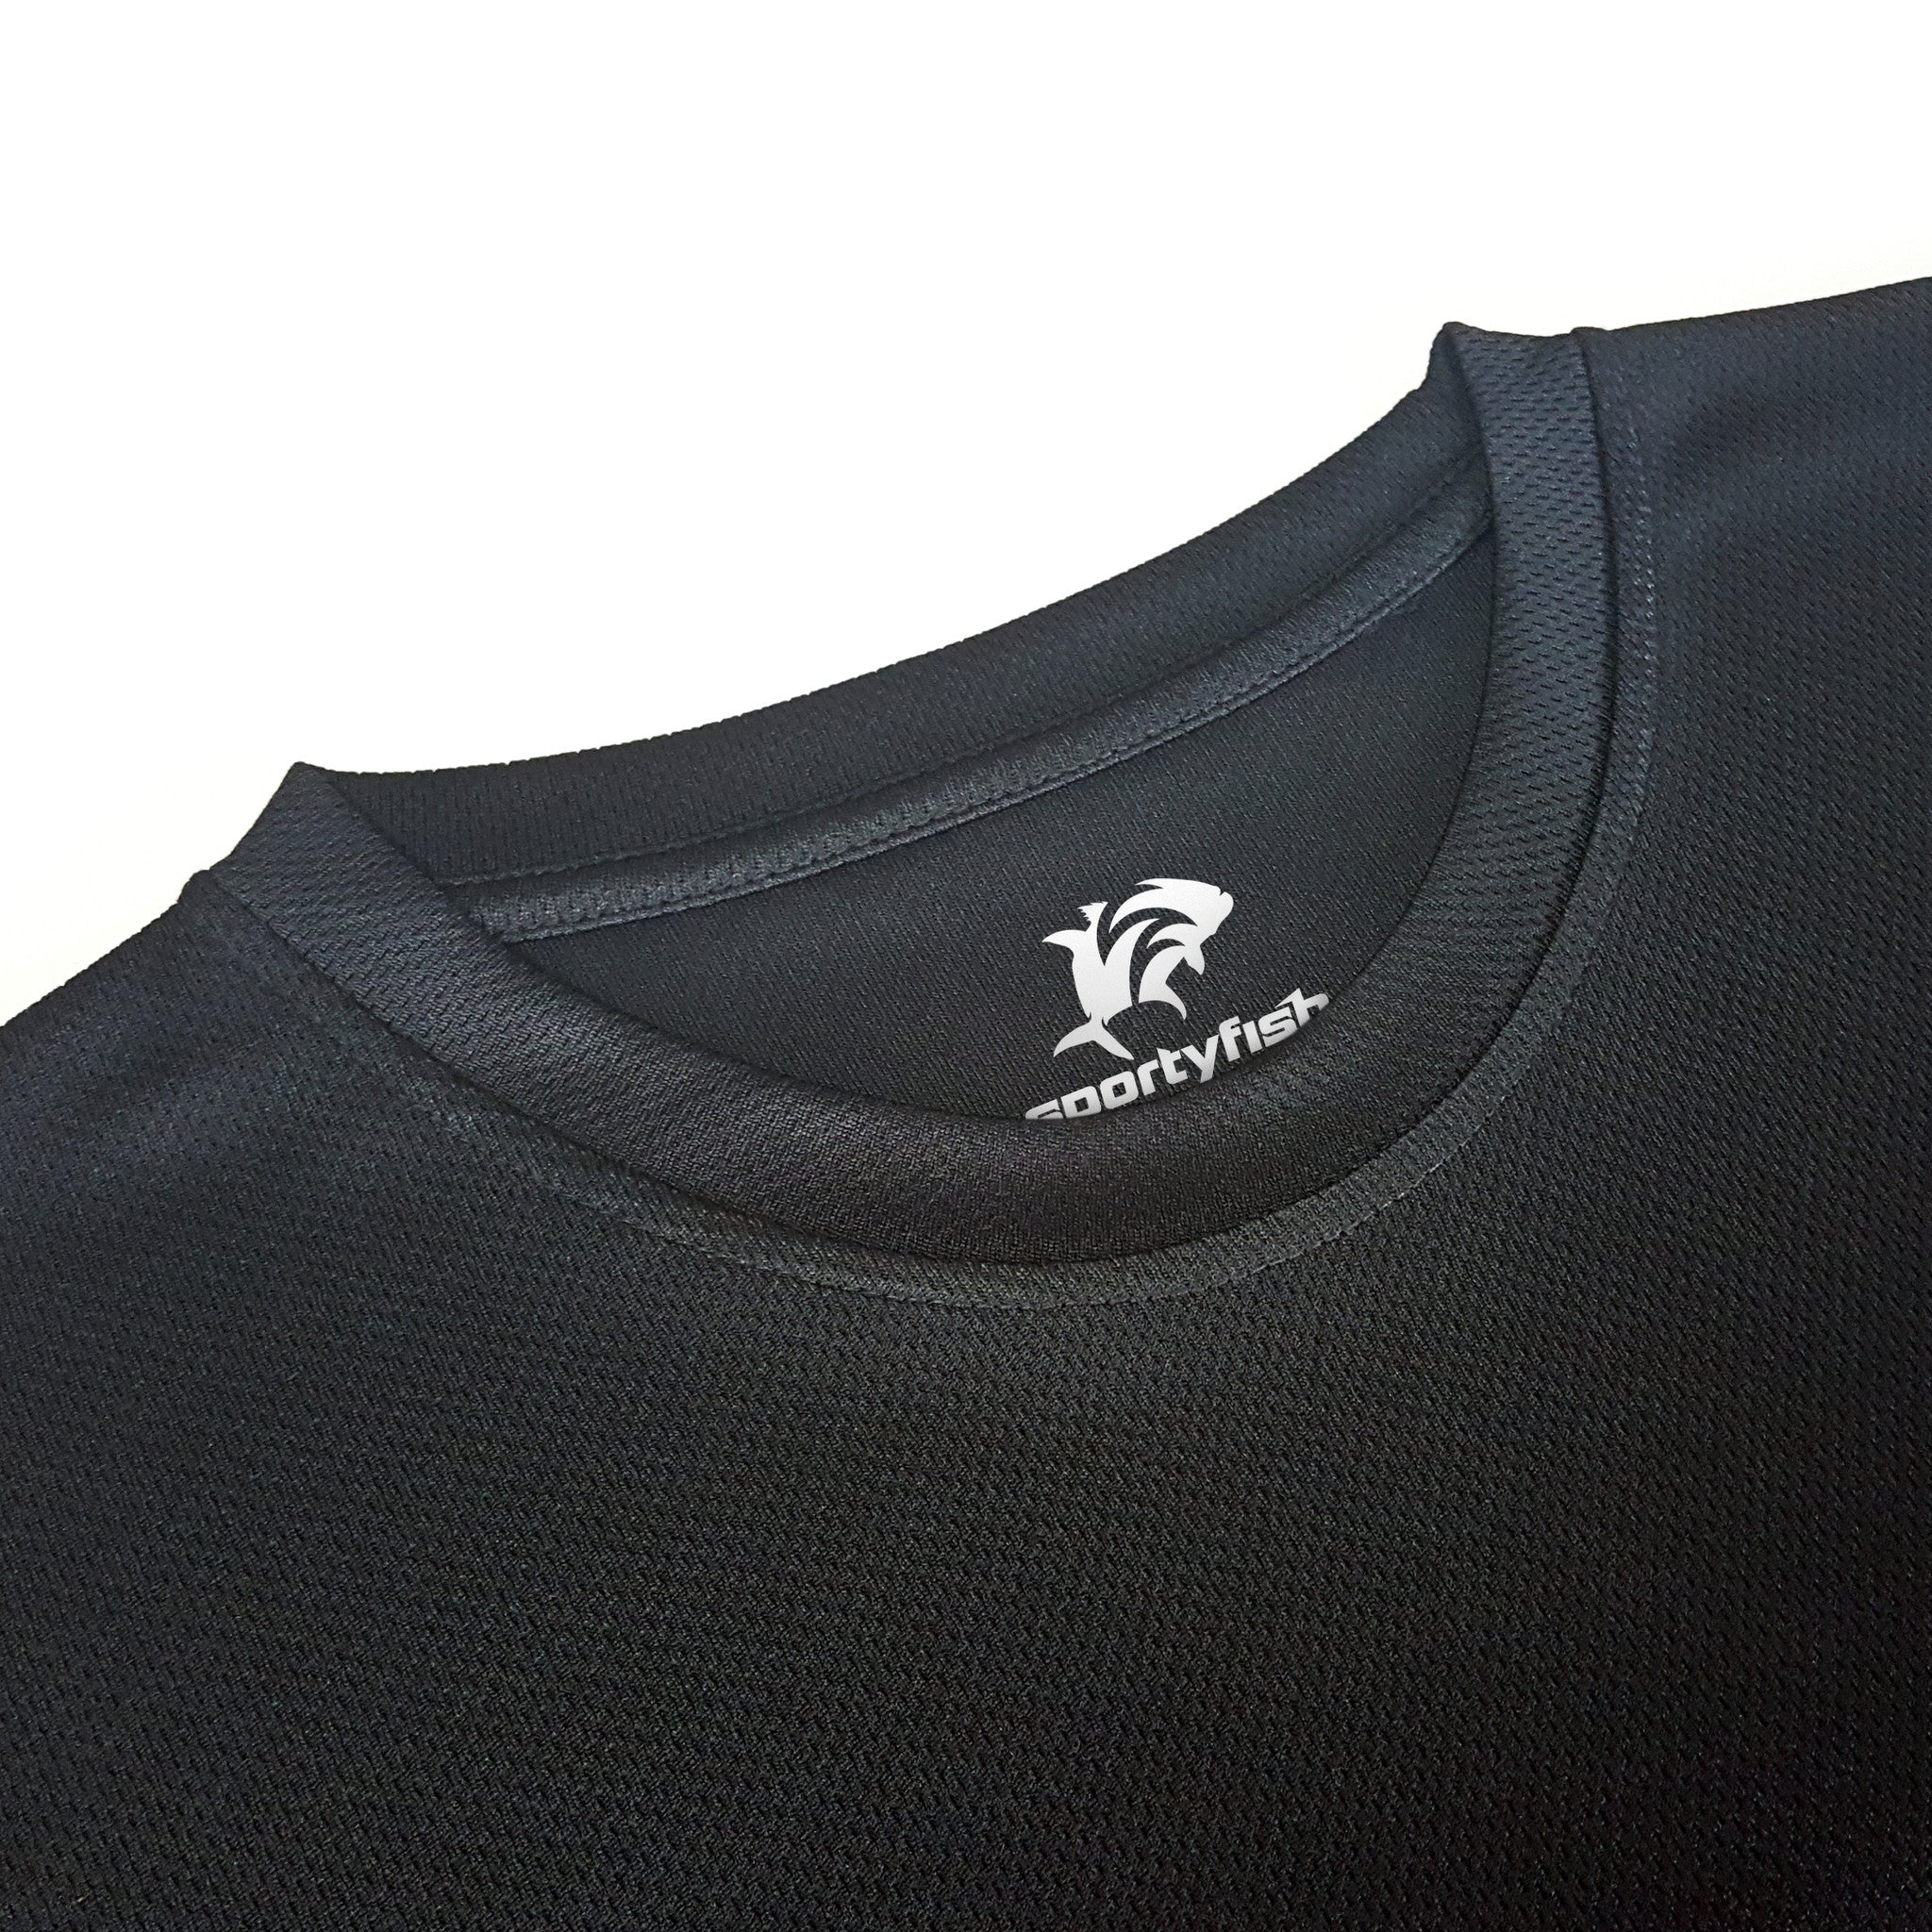 SportyFish Black Series black t-shirt: Black marlin close-up view 2